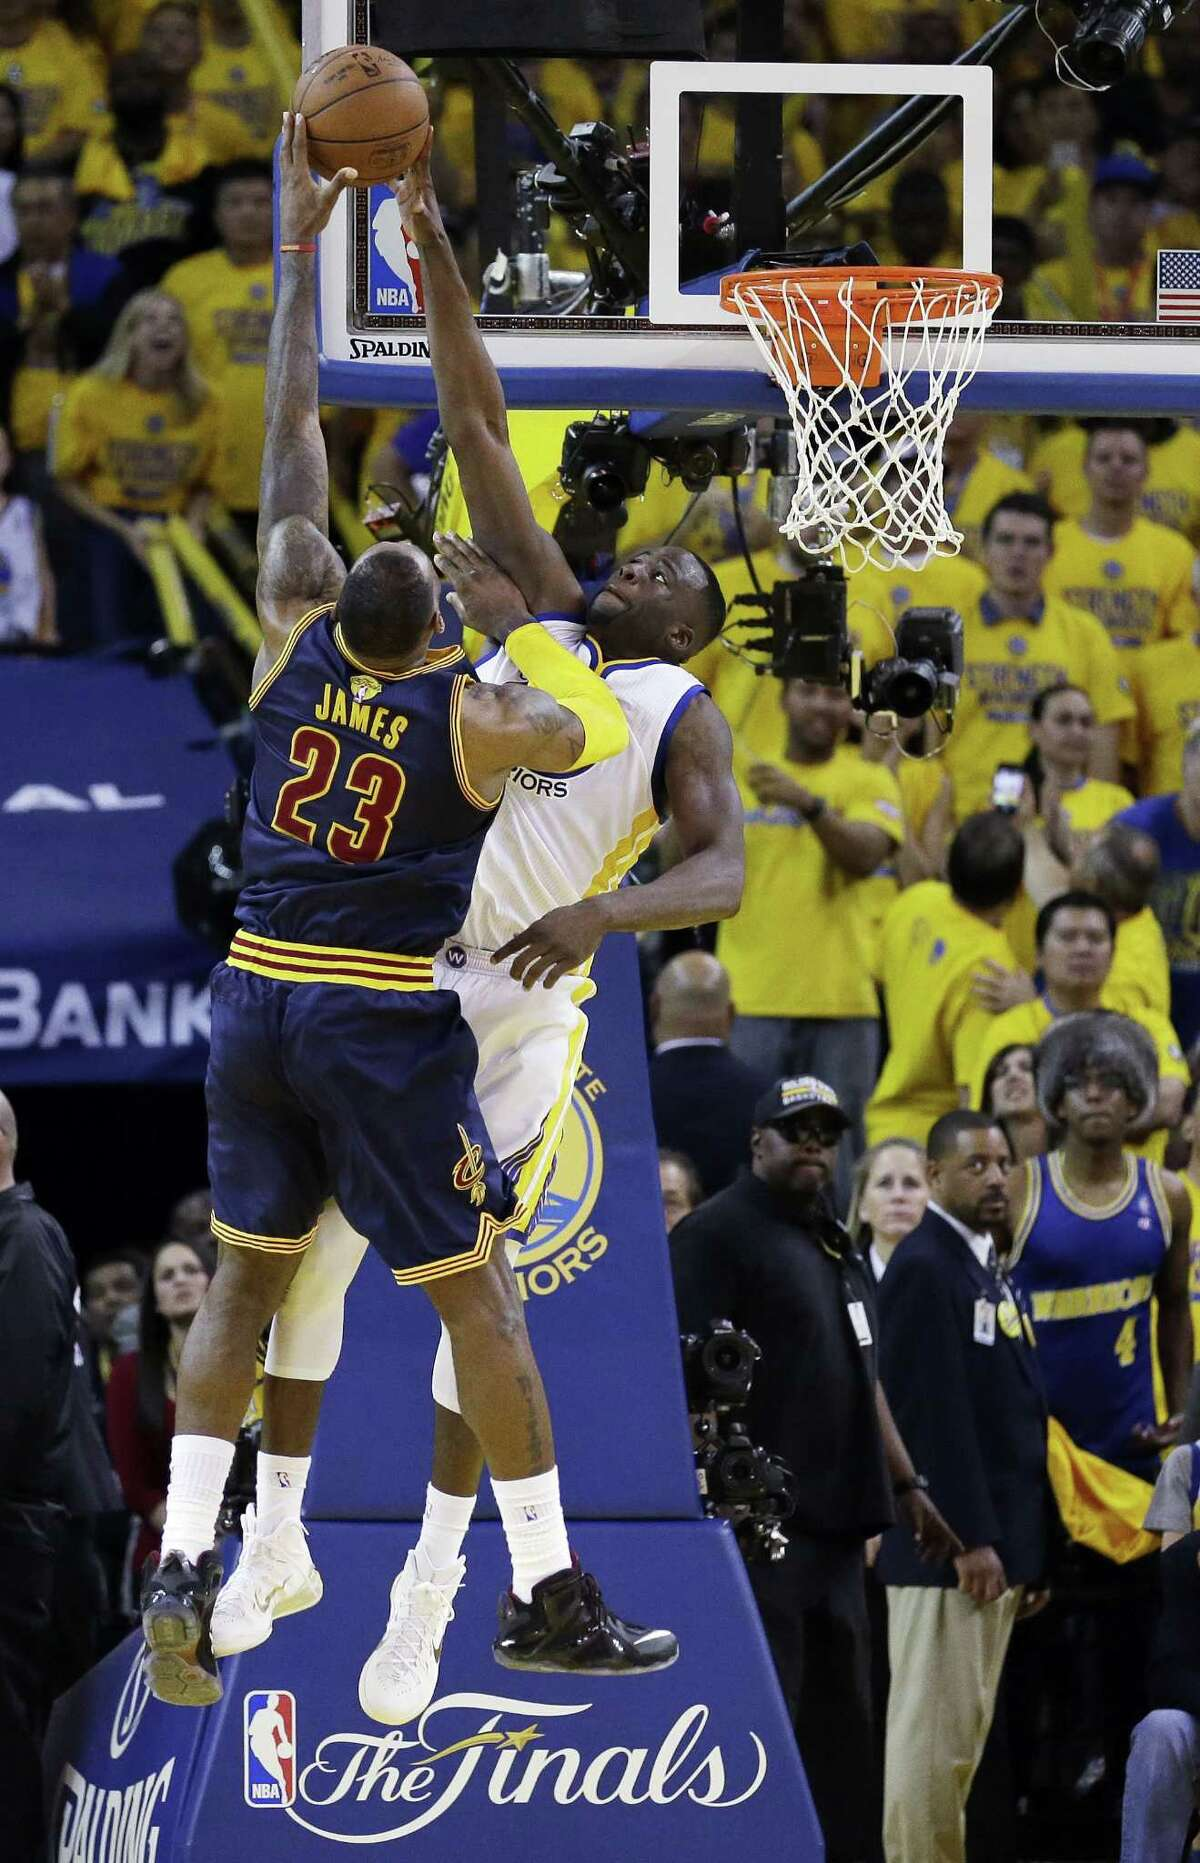 Golden State Warriors forward Draymond Green, right, blocks a shot attempt by Cleveland Cavaliers forward LeBron James during the overtime period of Game 2 of basketball's NBA Finals in Oakland, Calif. on June 7, 2015. The Cavaliers won 95-93 in overtime.